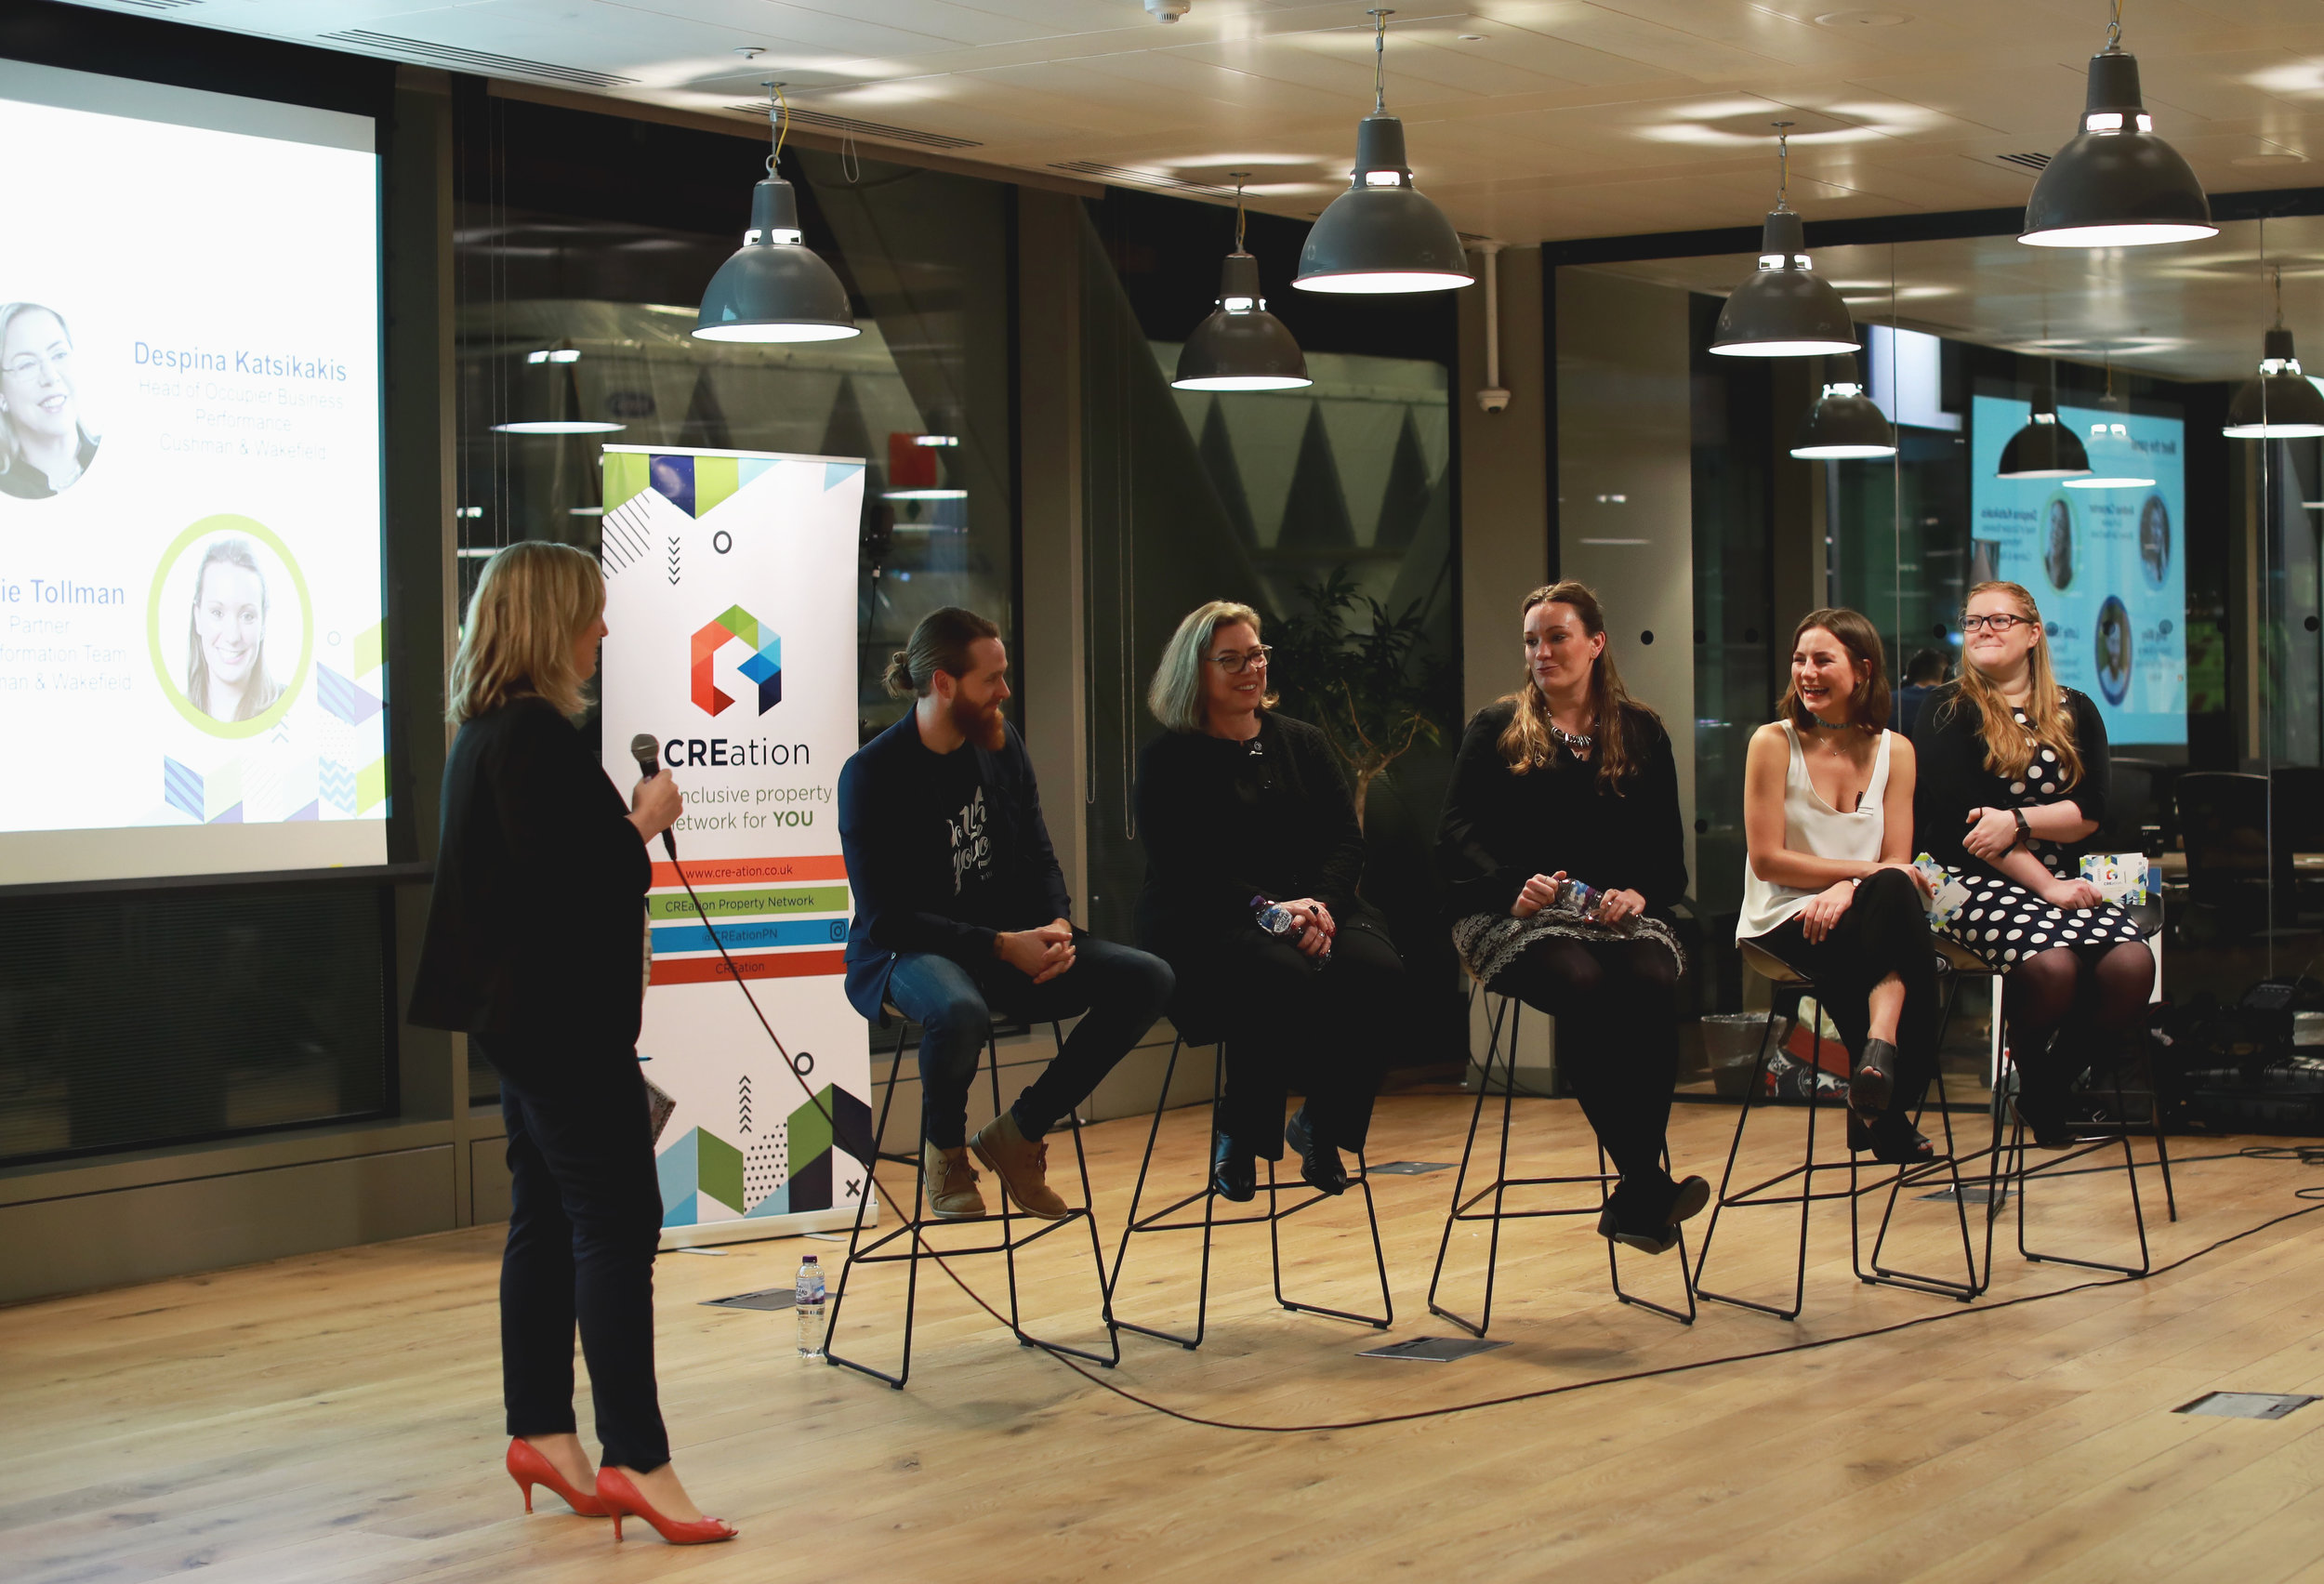 January Launch Event Panel Discussion, CREation  From Left to right: Andrea Carpenter (Women Talk Real Estate), Greg Miley (WeWork), Despina Katsikakis (Cushman & Wakefield), Lottie Tollman (Cushman & Wakefield), Rosanna Lawn (CREation co-founder) and Harri John (CREation co-founder).